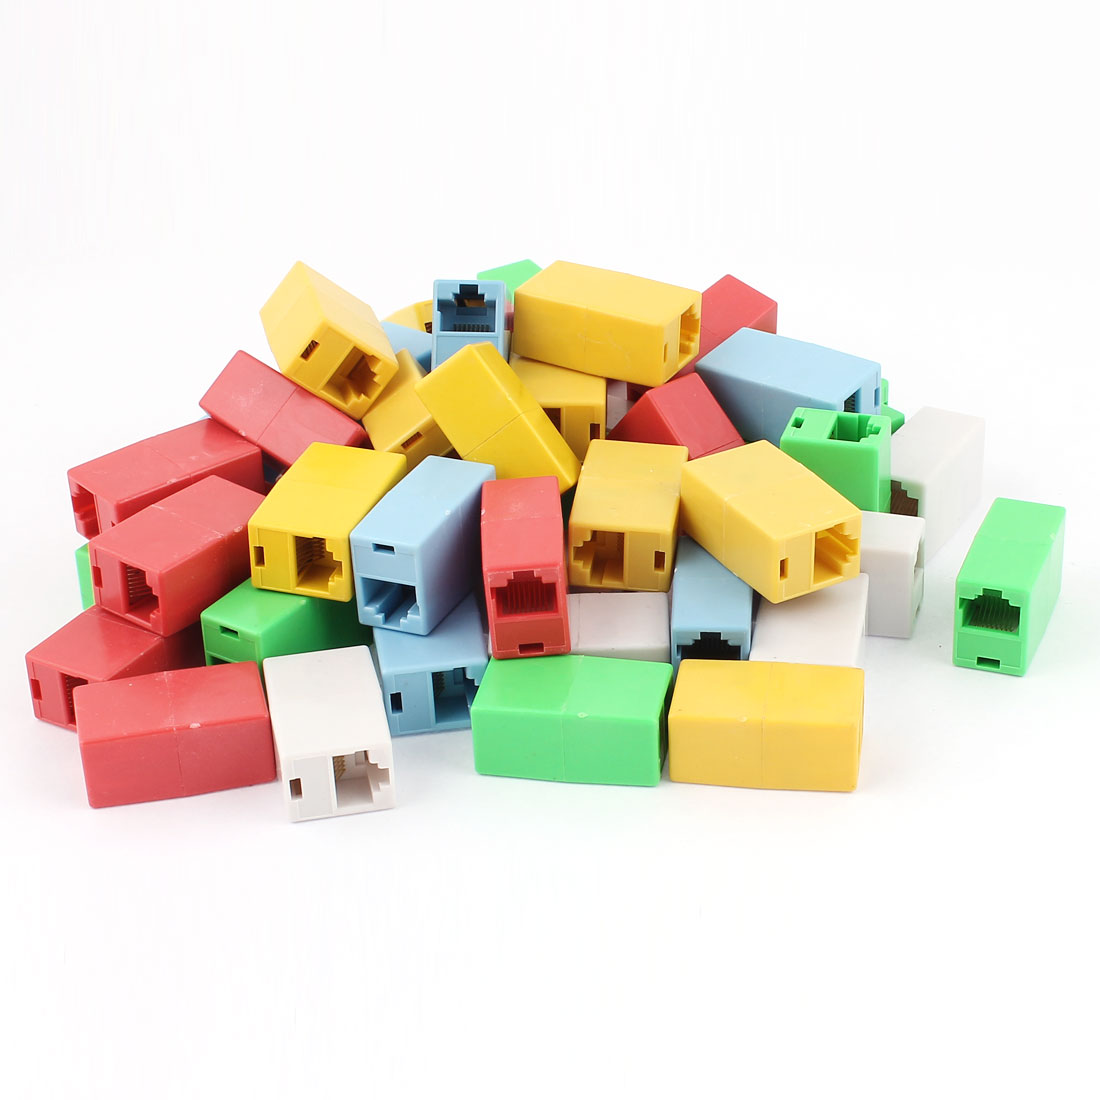 50pcs RJ45 Adapter Coupler Ethernet Network Cable 8P8C Female/Female Join Jack